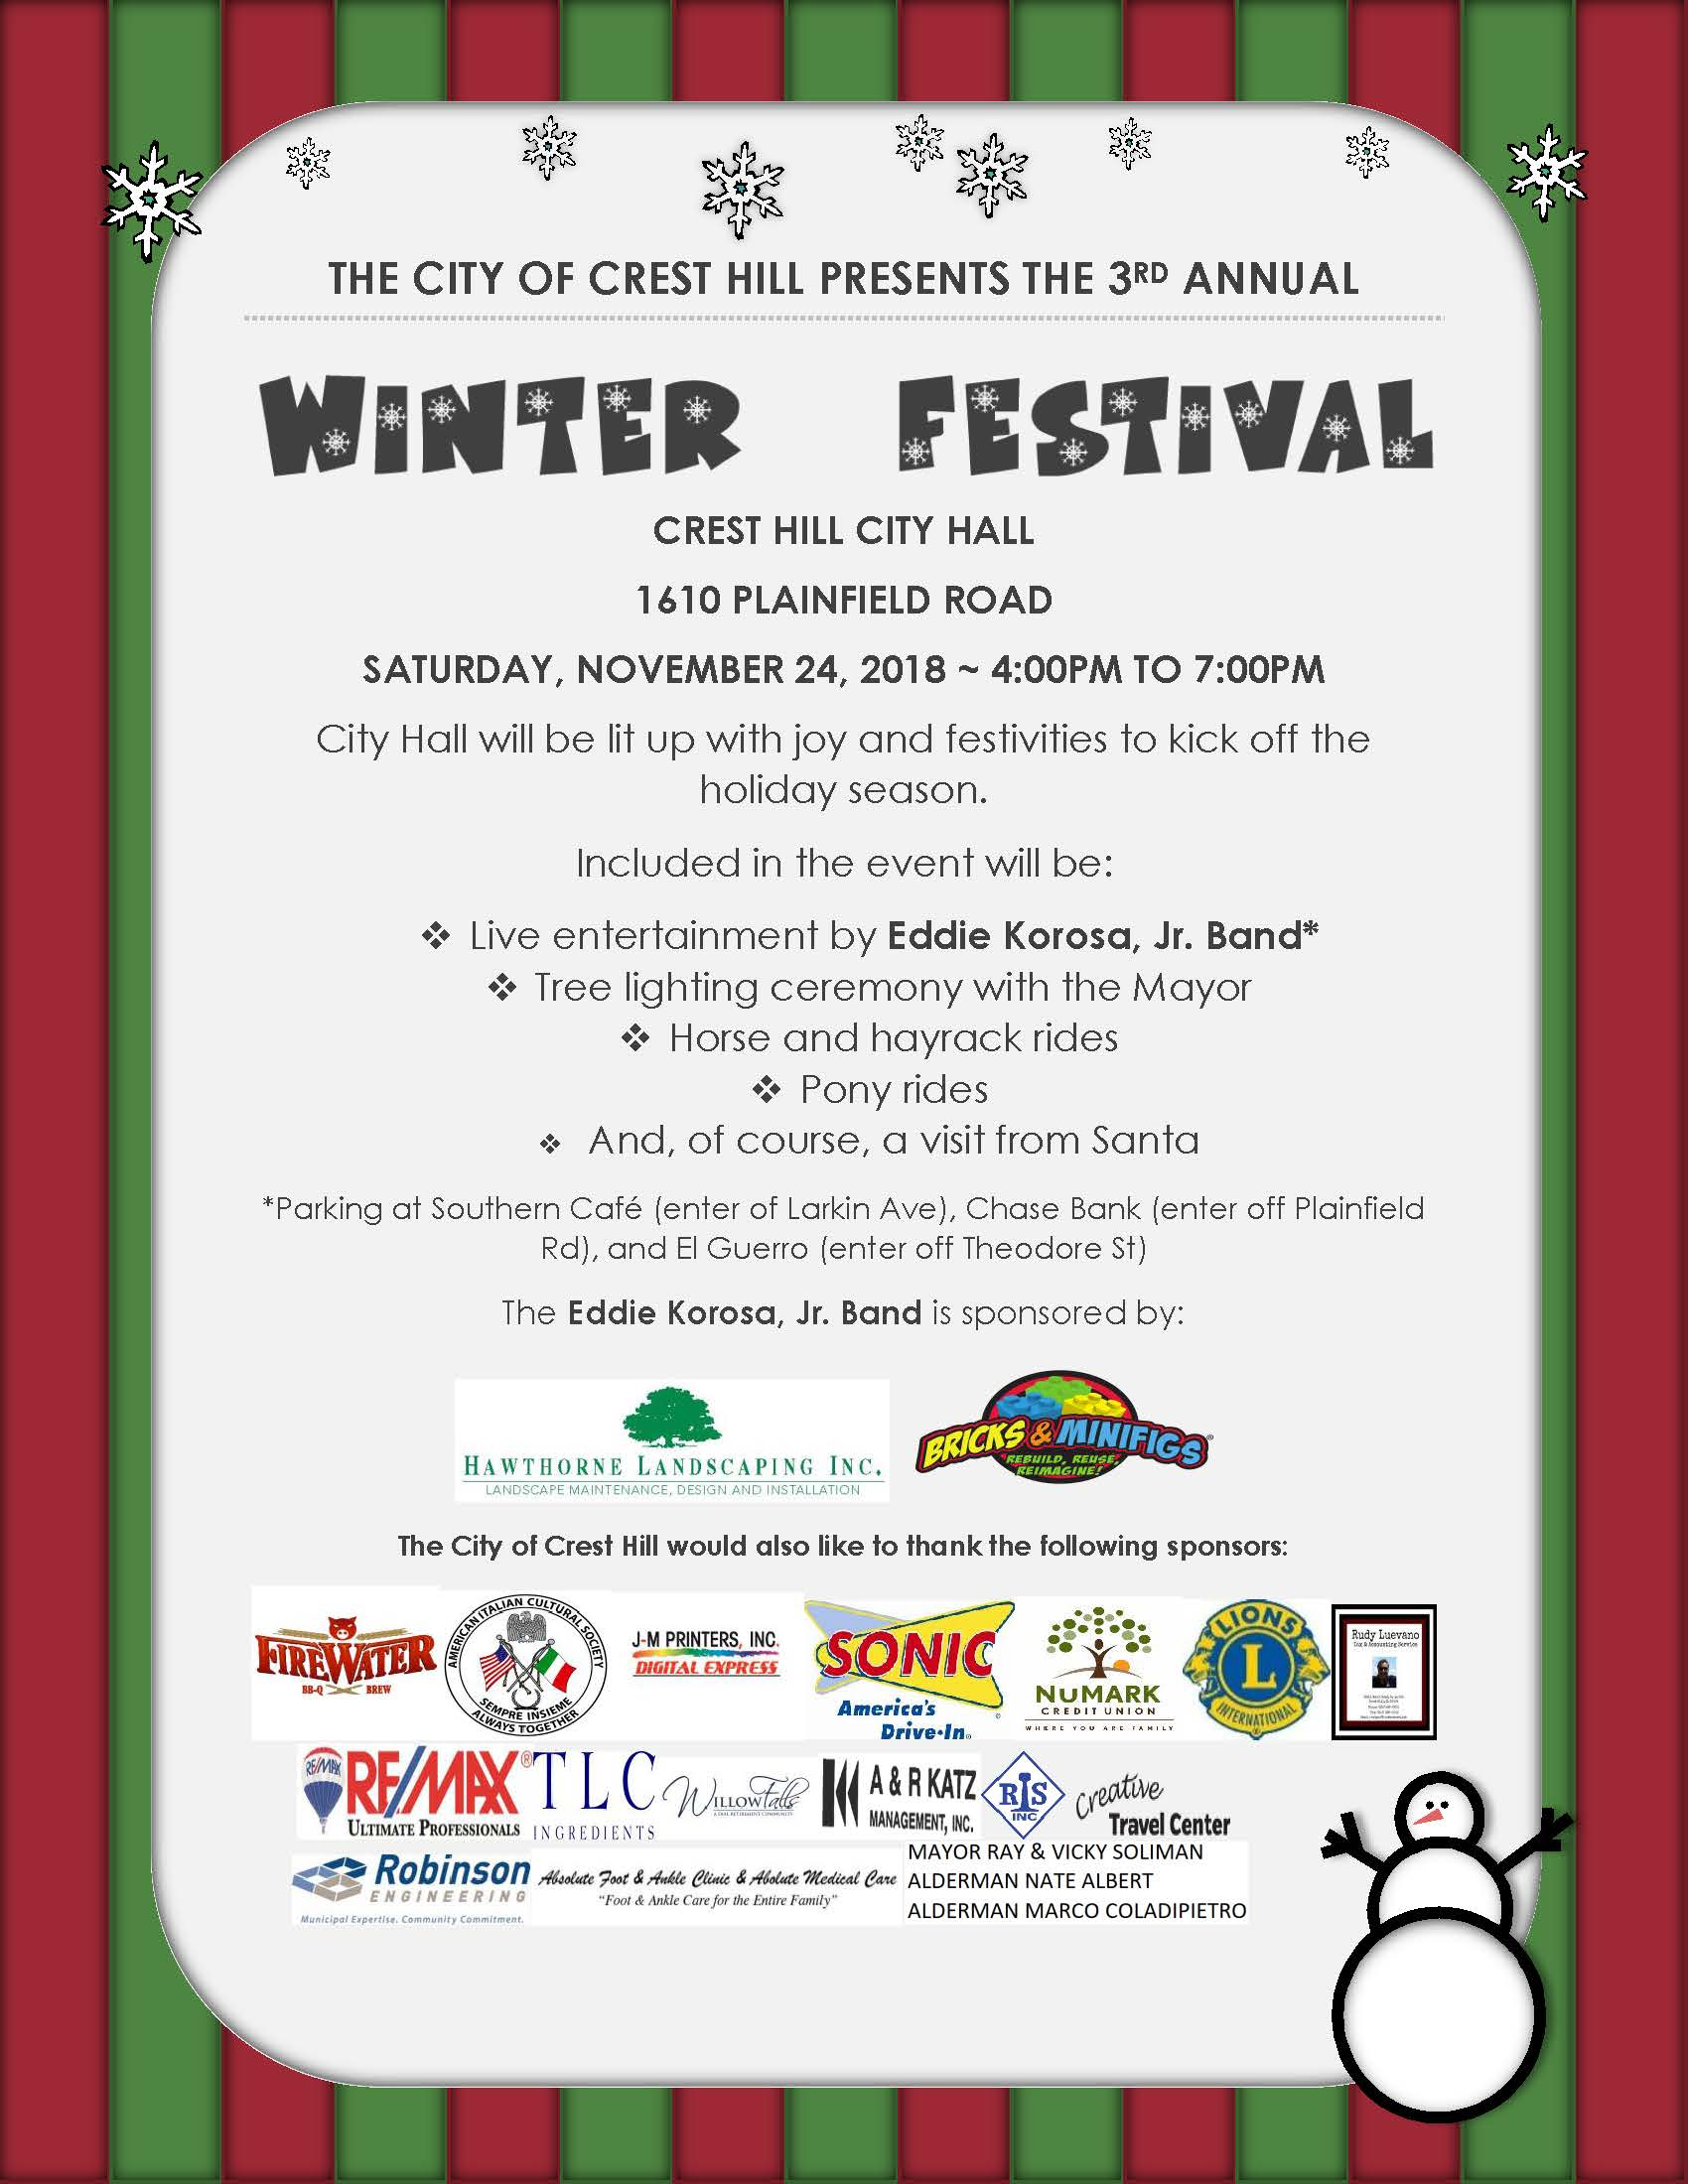 THE CITY OF CREST HILL WINTER FEST